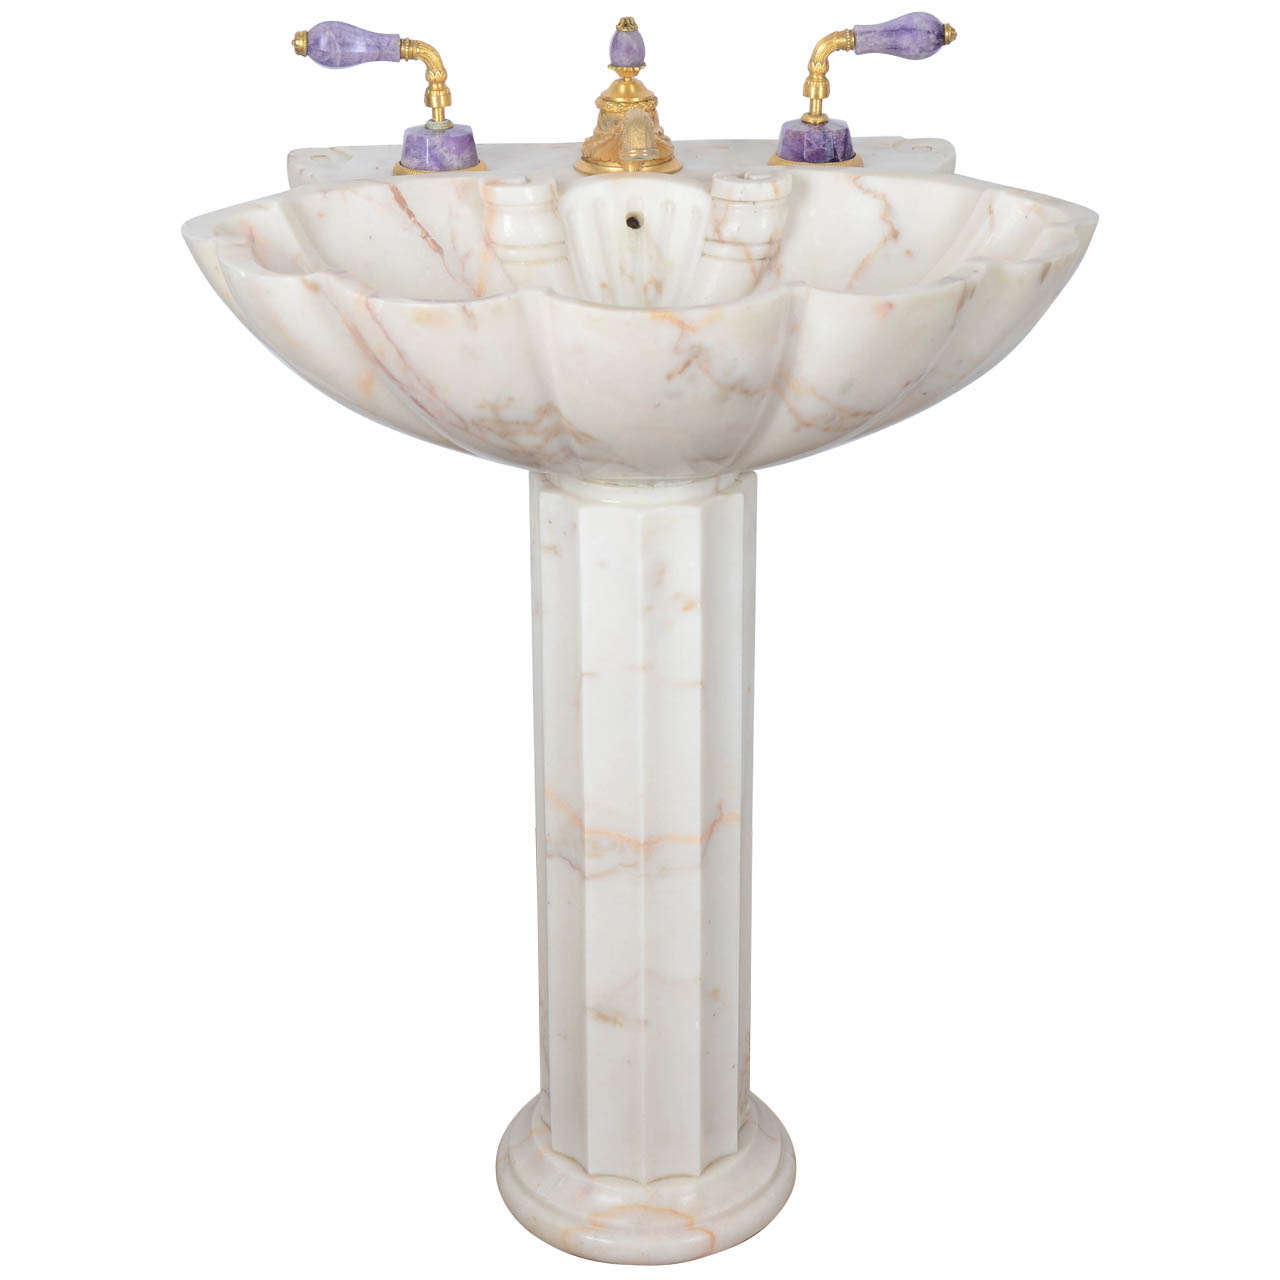 Sherle Wagner Marble Pedestal Sink With Gold Plated Purple